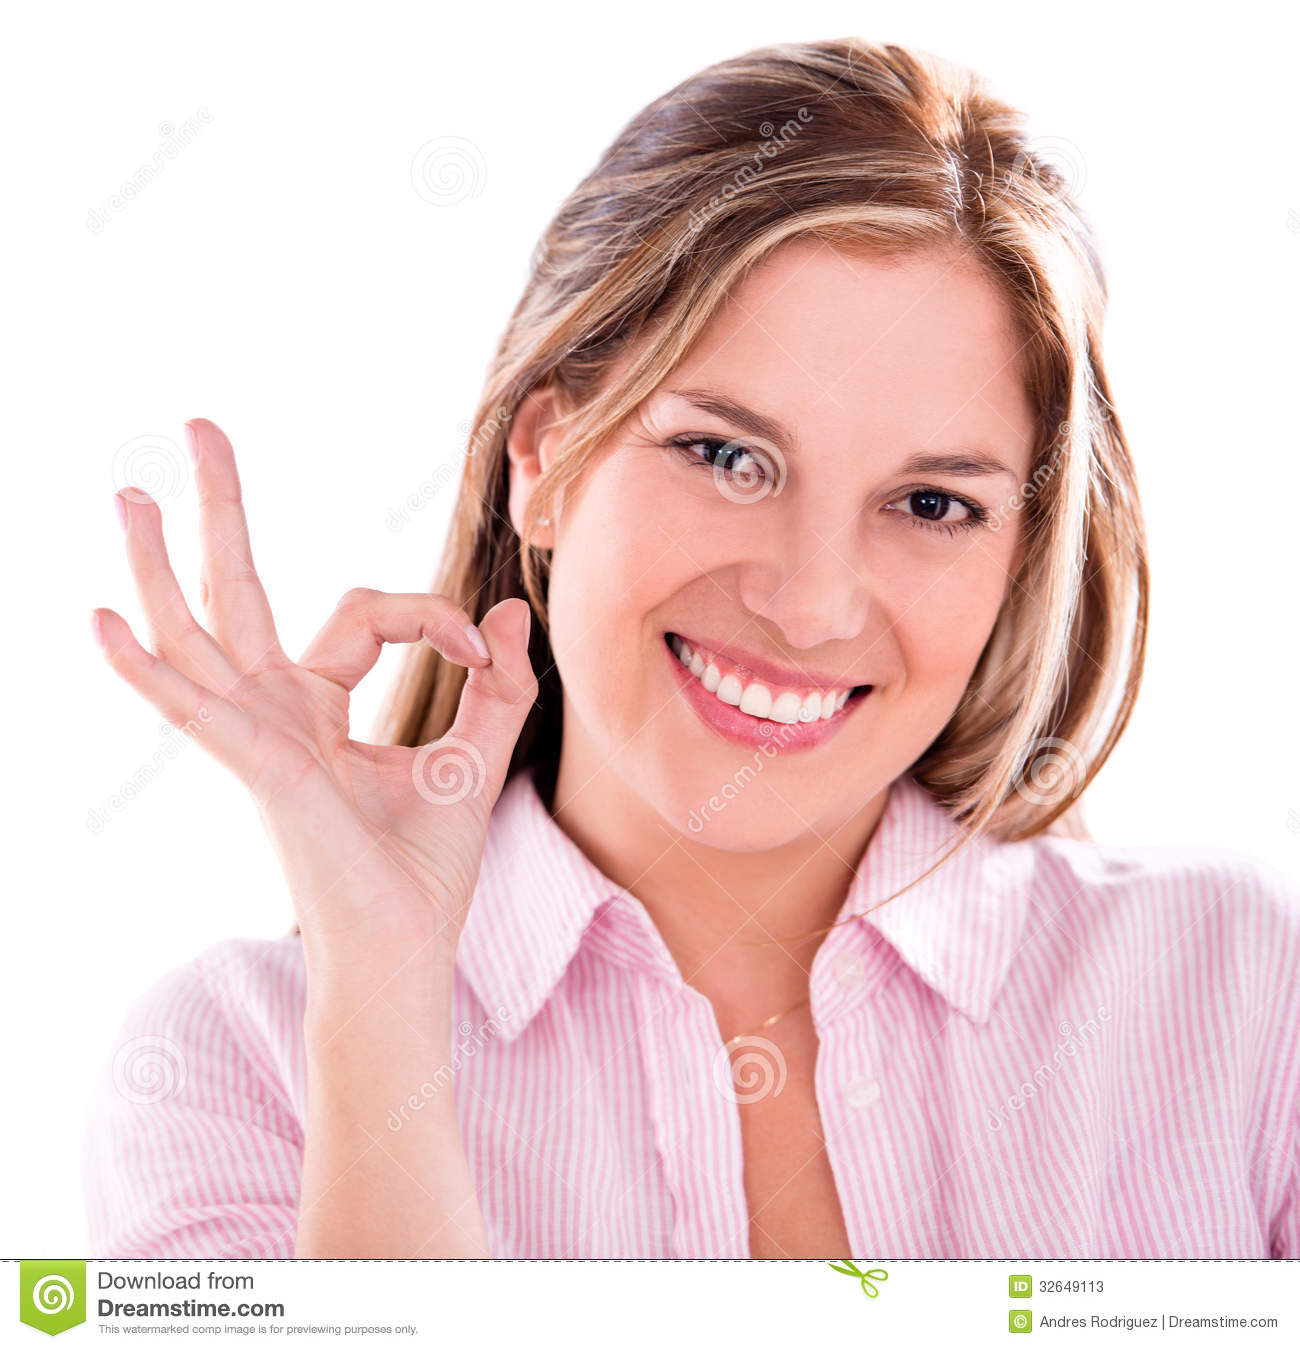 happy-woman-ok-sign-approving-something-isolated-over-white-32649113.jpg